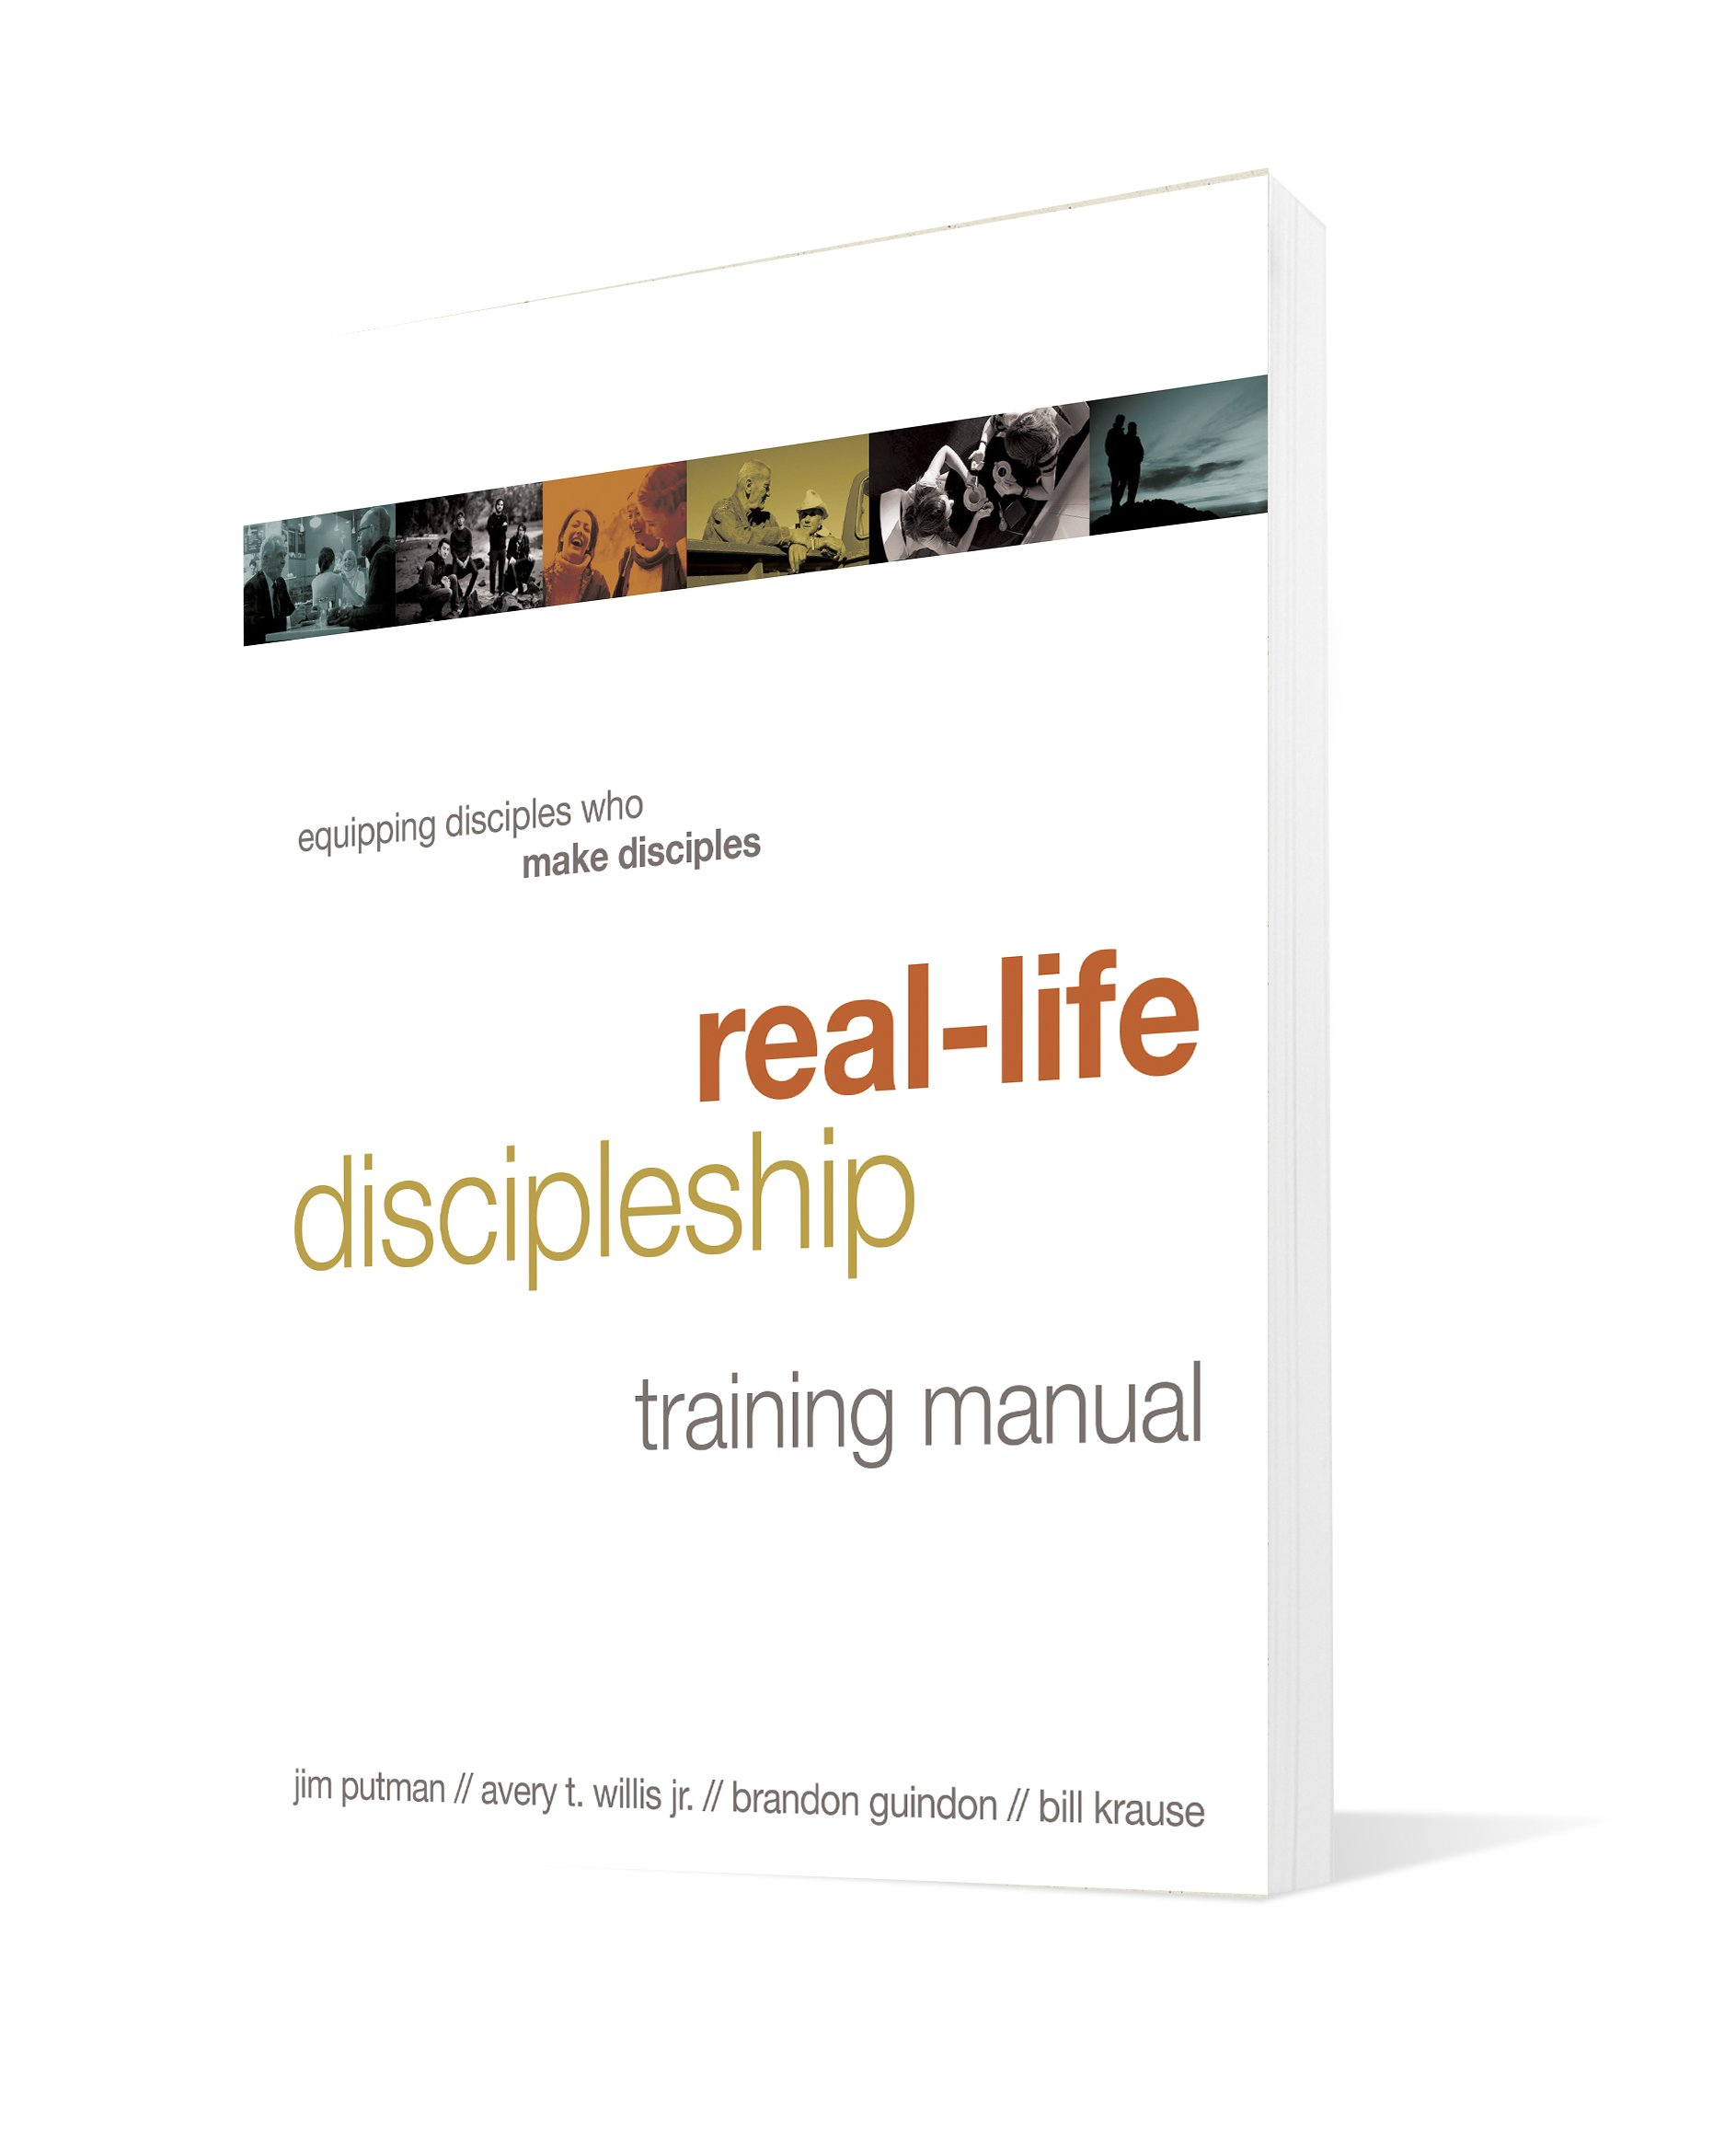 Real-Life Discipleship Training Manual: Equipping Disciples